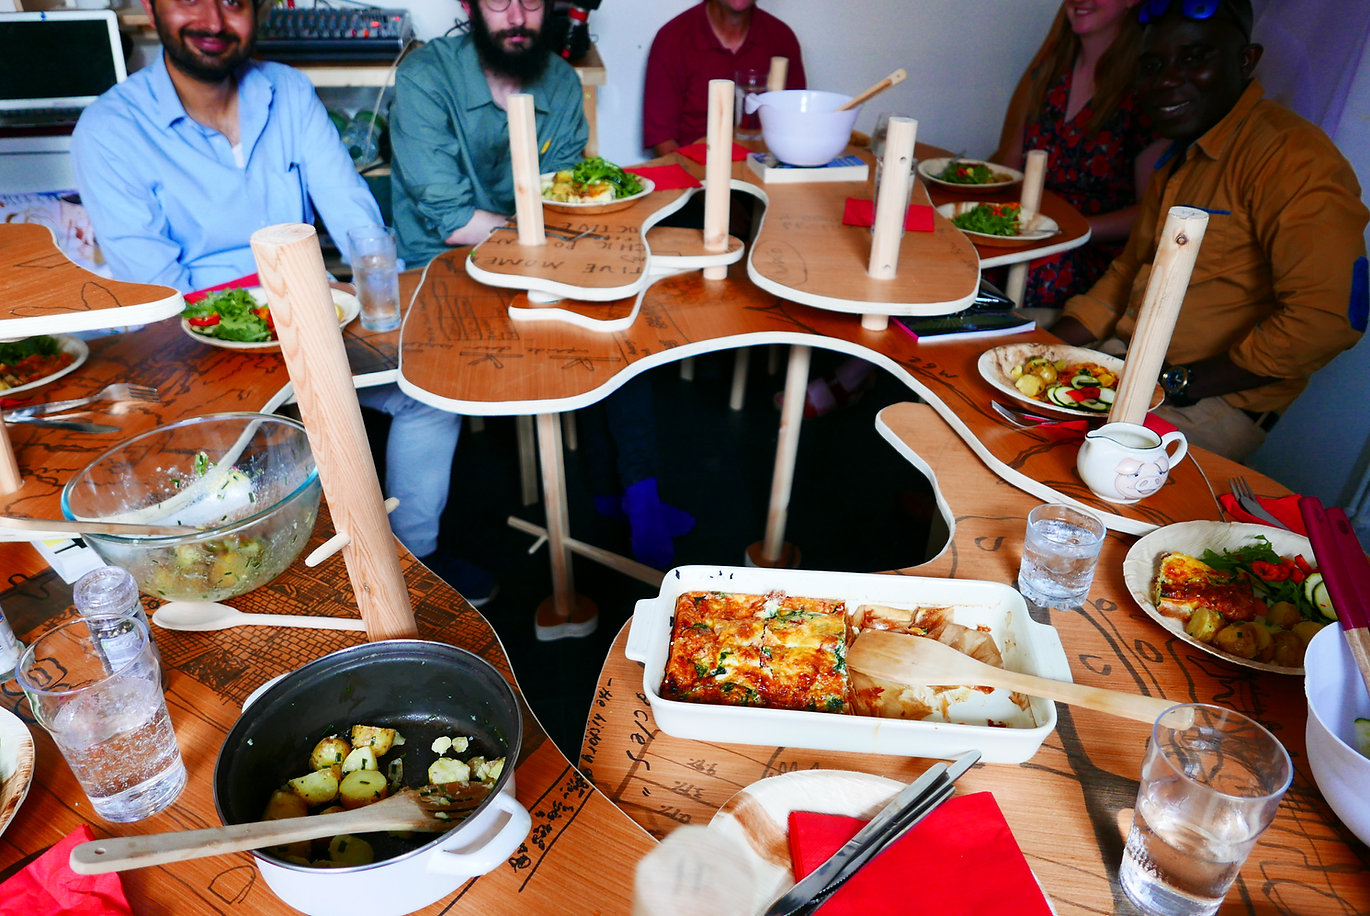 A group of people sitting around a wiggly table with food on plates and napkins.